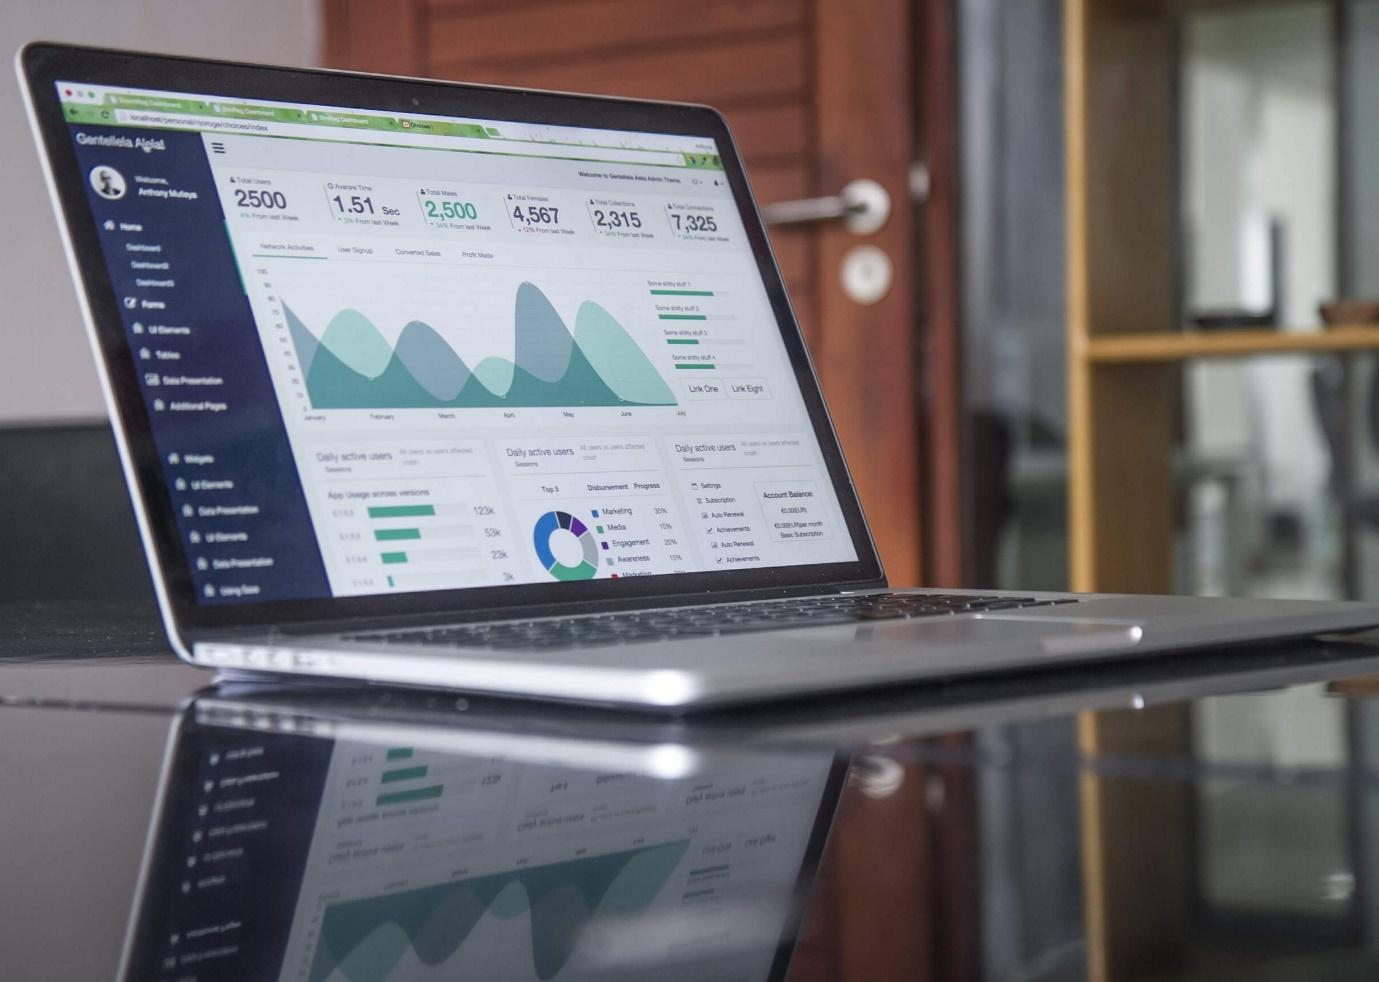 Why Data Visualization skills are so important for Data Scientists?